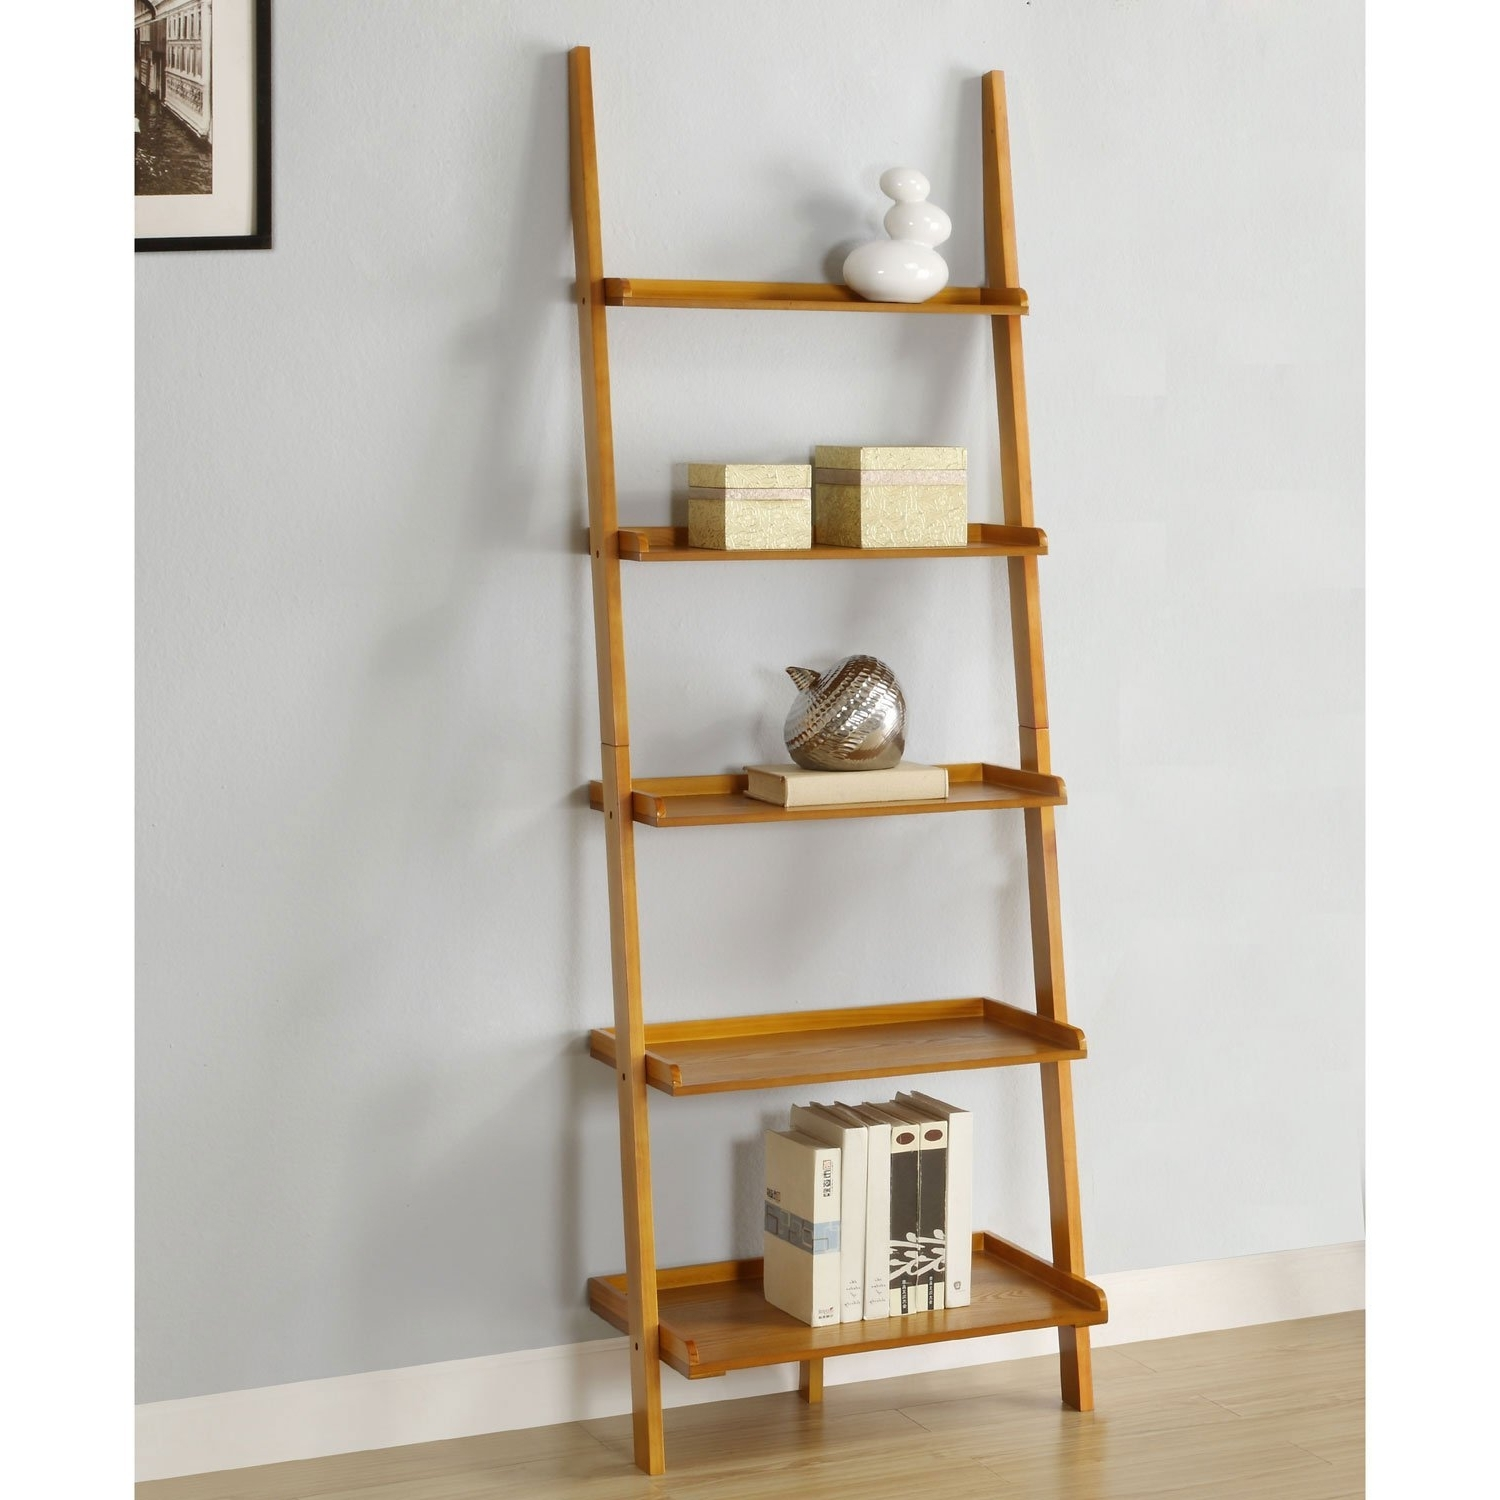 Latest Leaning Ladder Bookcases Throughout Amazon: Athomemart Leaning Ladder Bookshelf In Oak Finish (View 2 of 15)